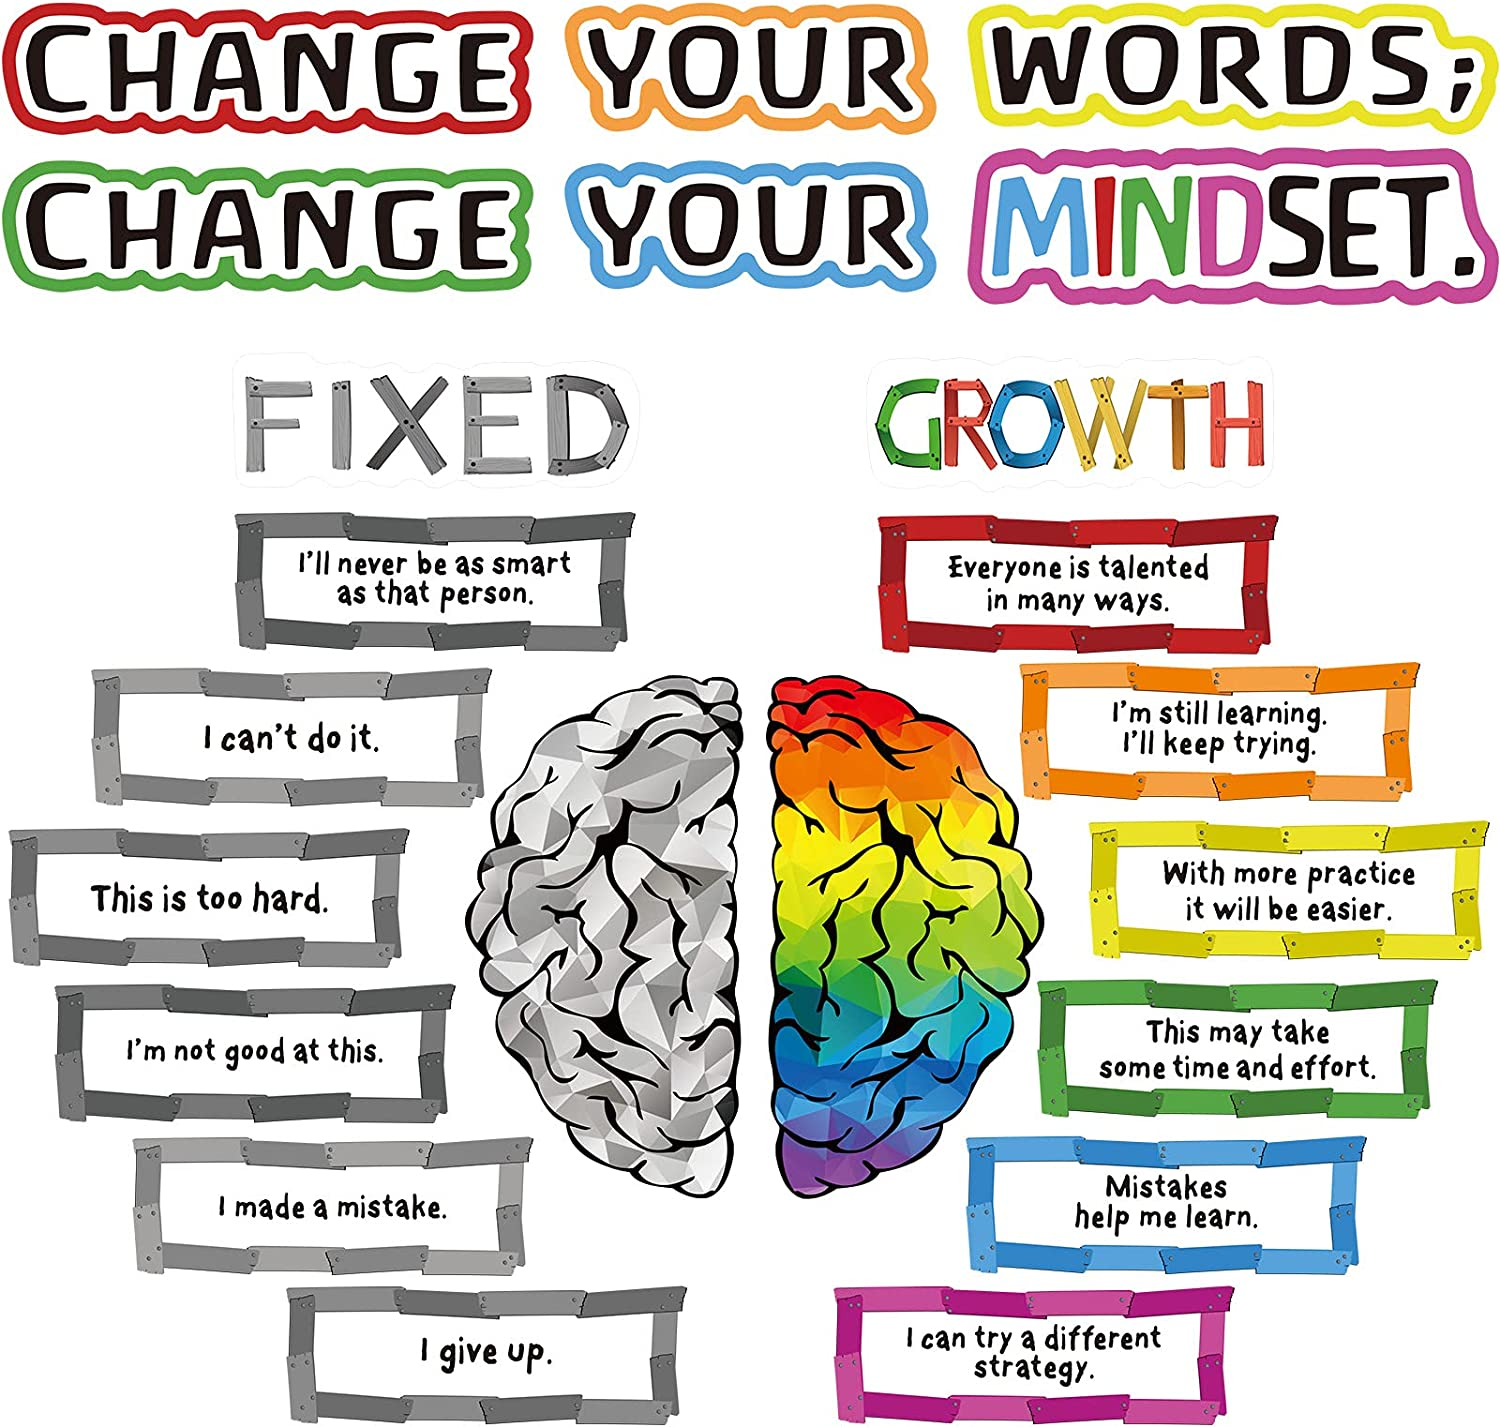 22 Pieces Growth Mindset Posters Bulletin Board Positive Sayings Accents Display Set Homeschool or Classroom Decorations for Teachers and Students Bedroom Nursery Playroom Decor